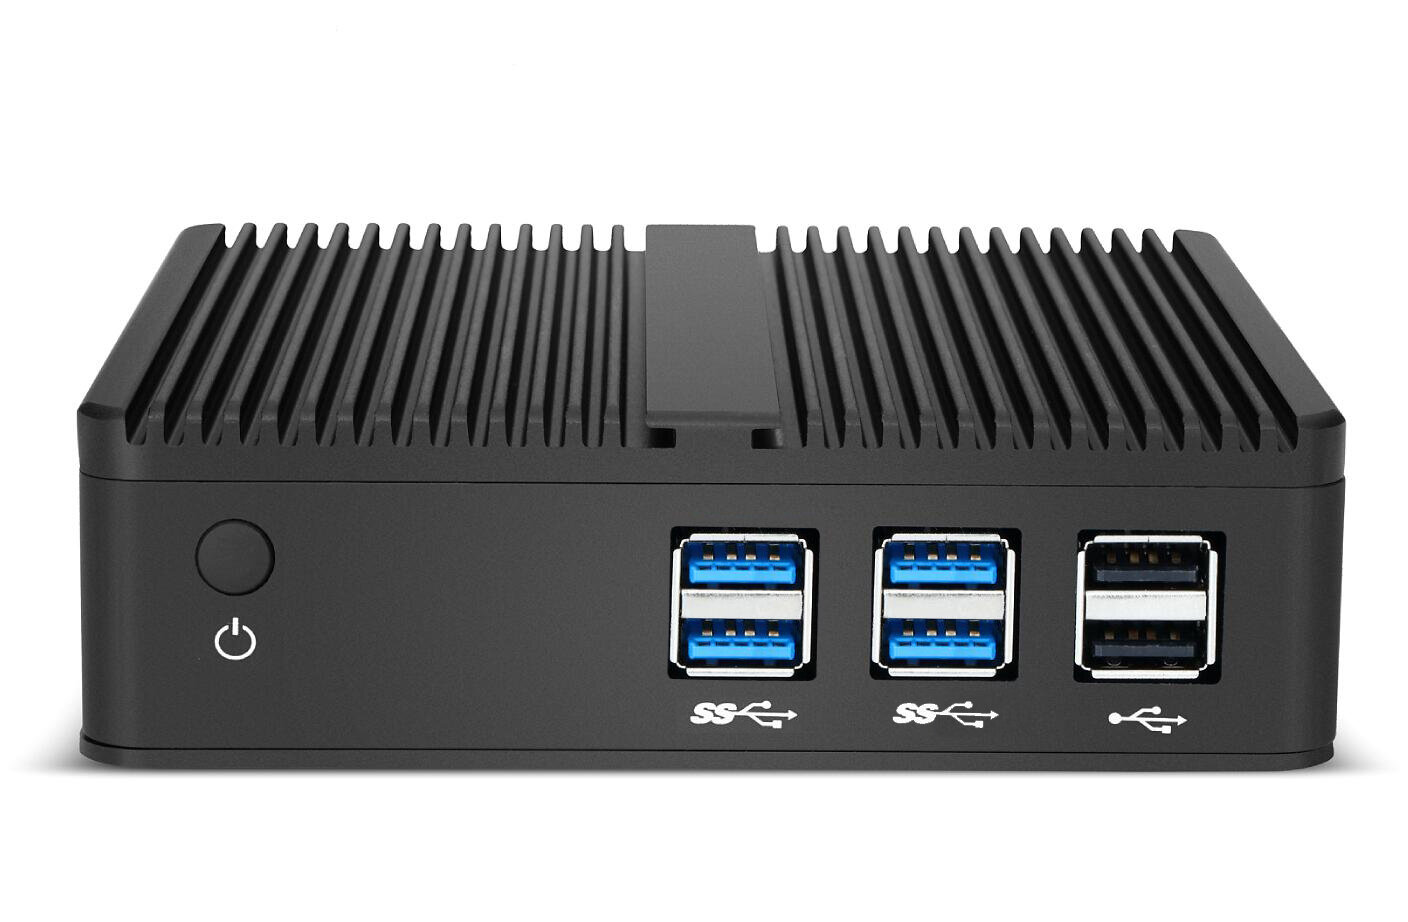 XCY X30 Mini PC I74610Y Barebone 1.7GHz HD Graphics 4200 Dual Fanless Mini Desktop PC HDMI VGA WiFi Nettop HTPC